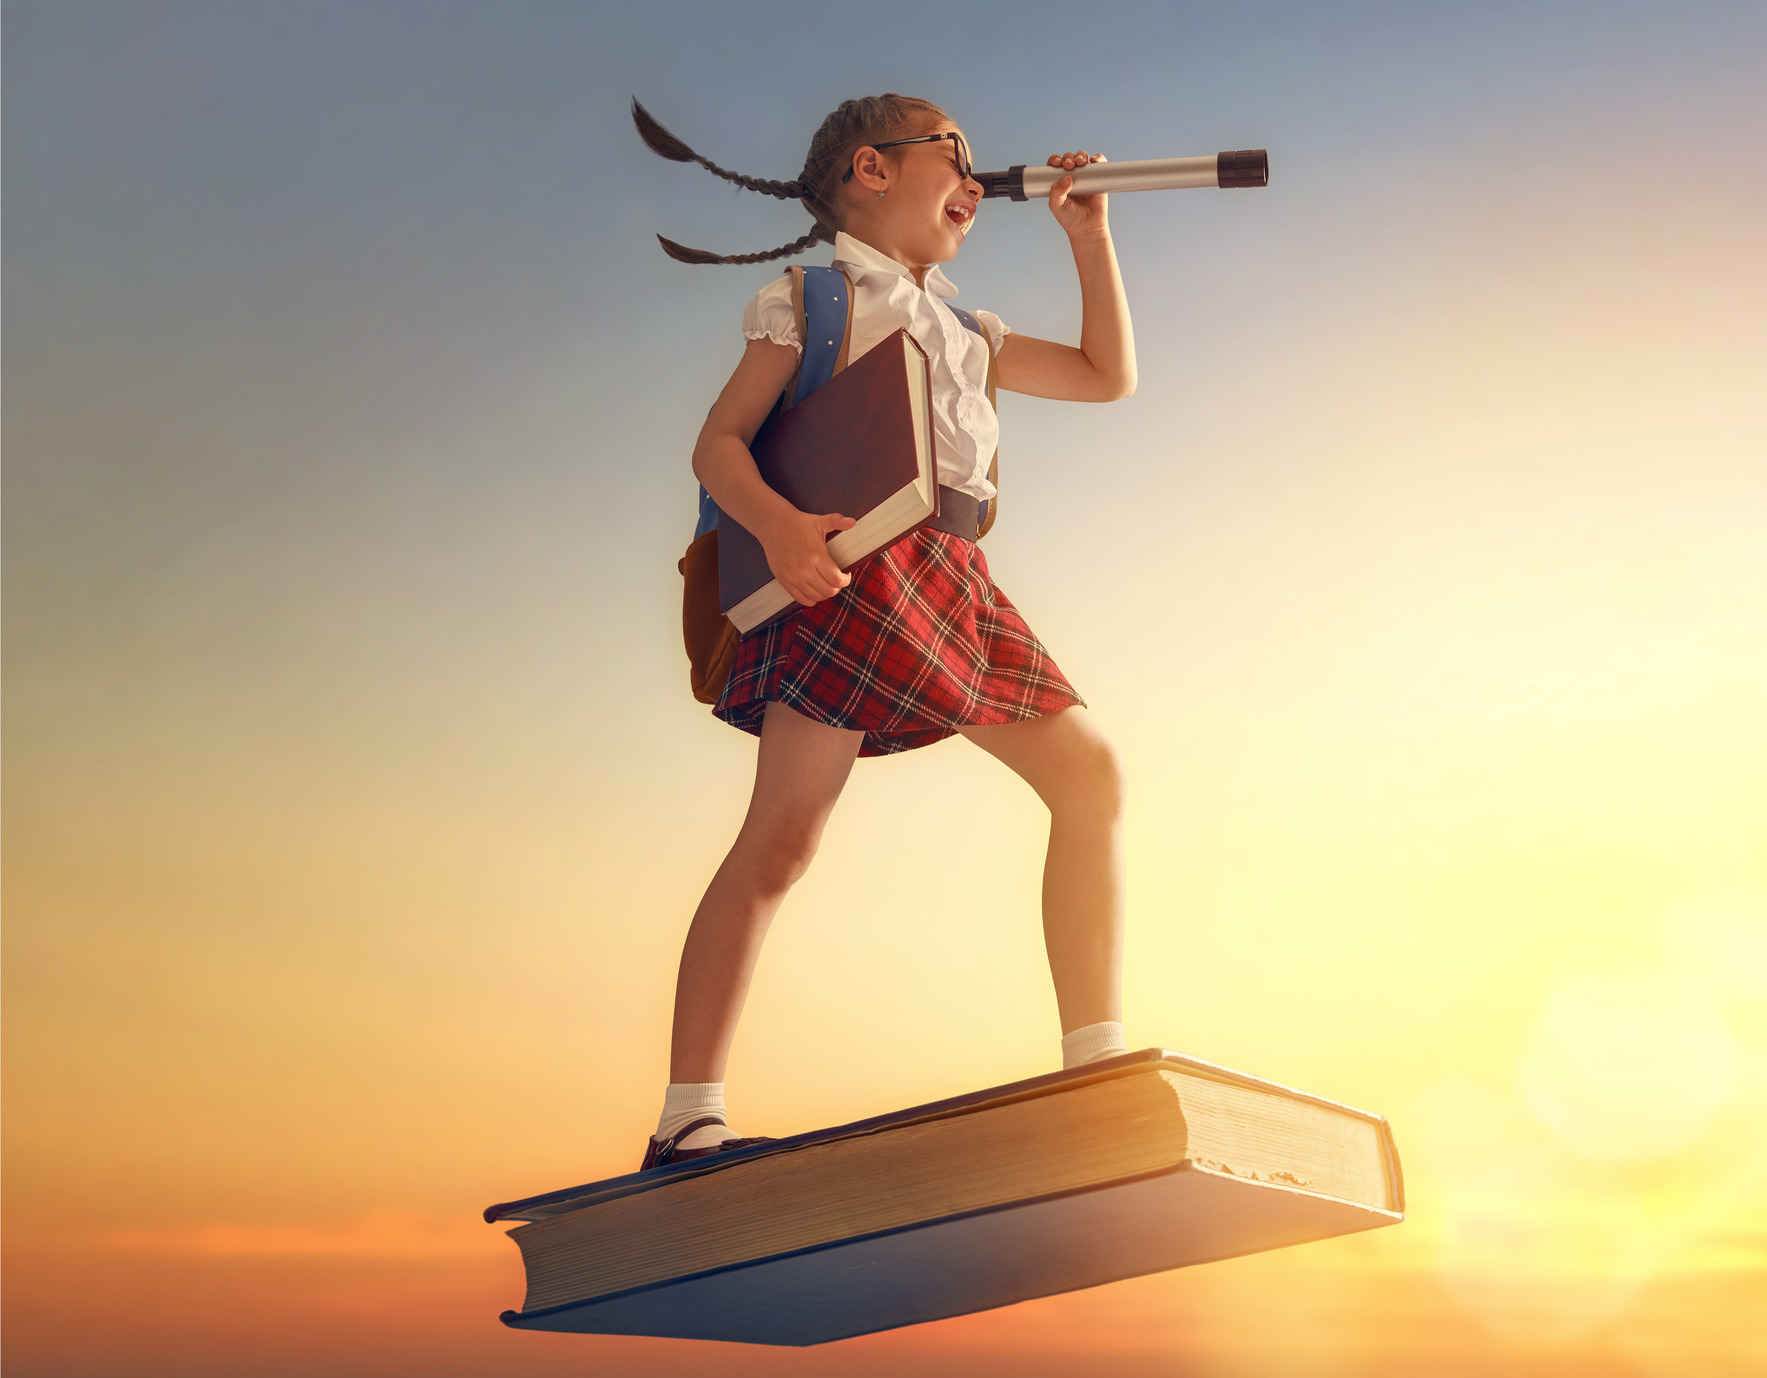 With a Great Library, the Sky's the Limit! image